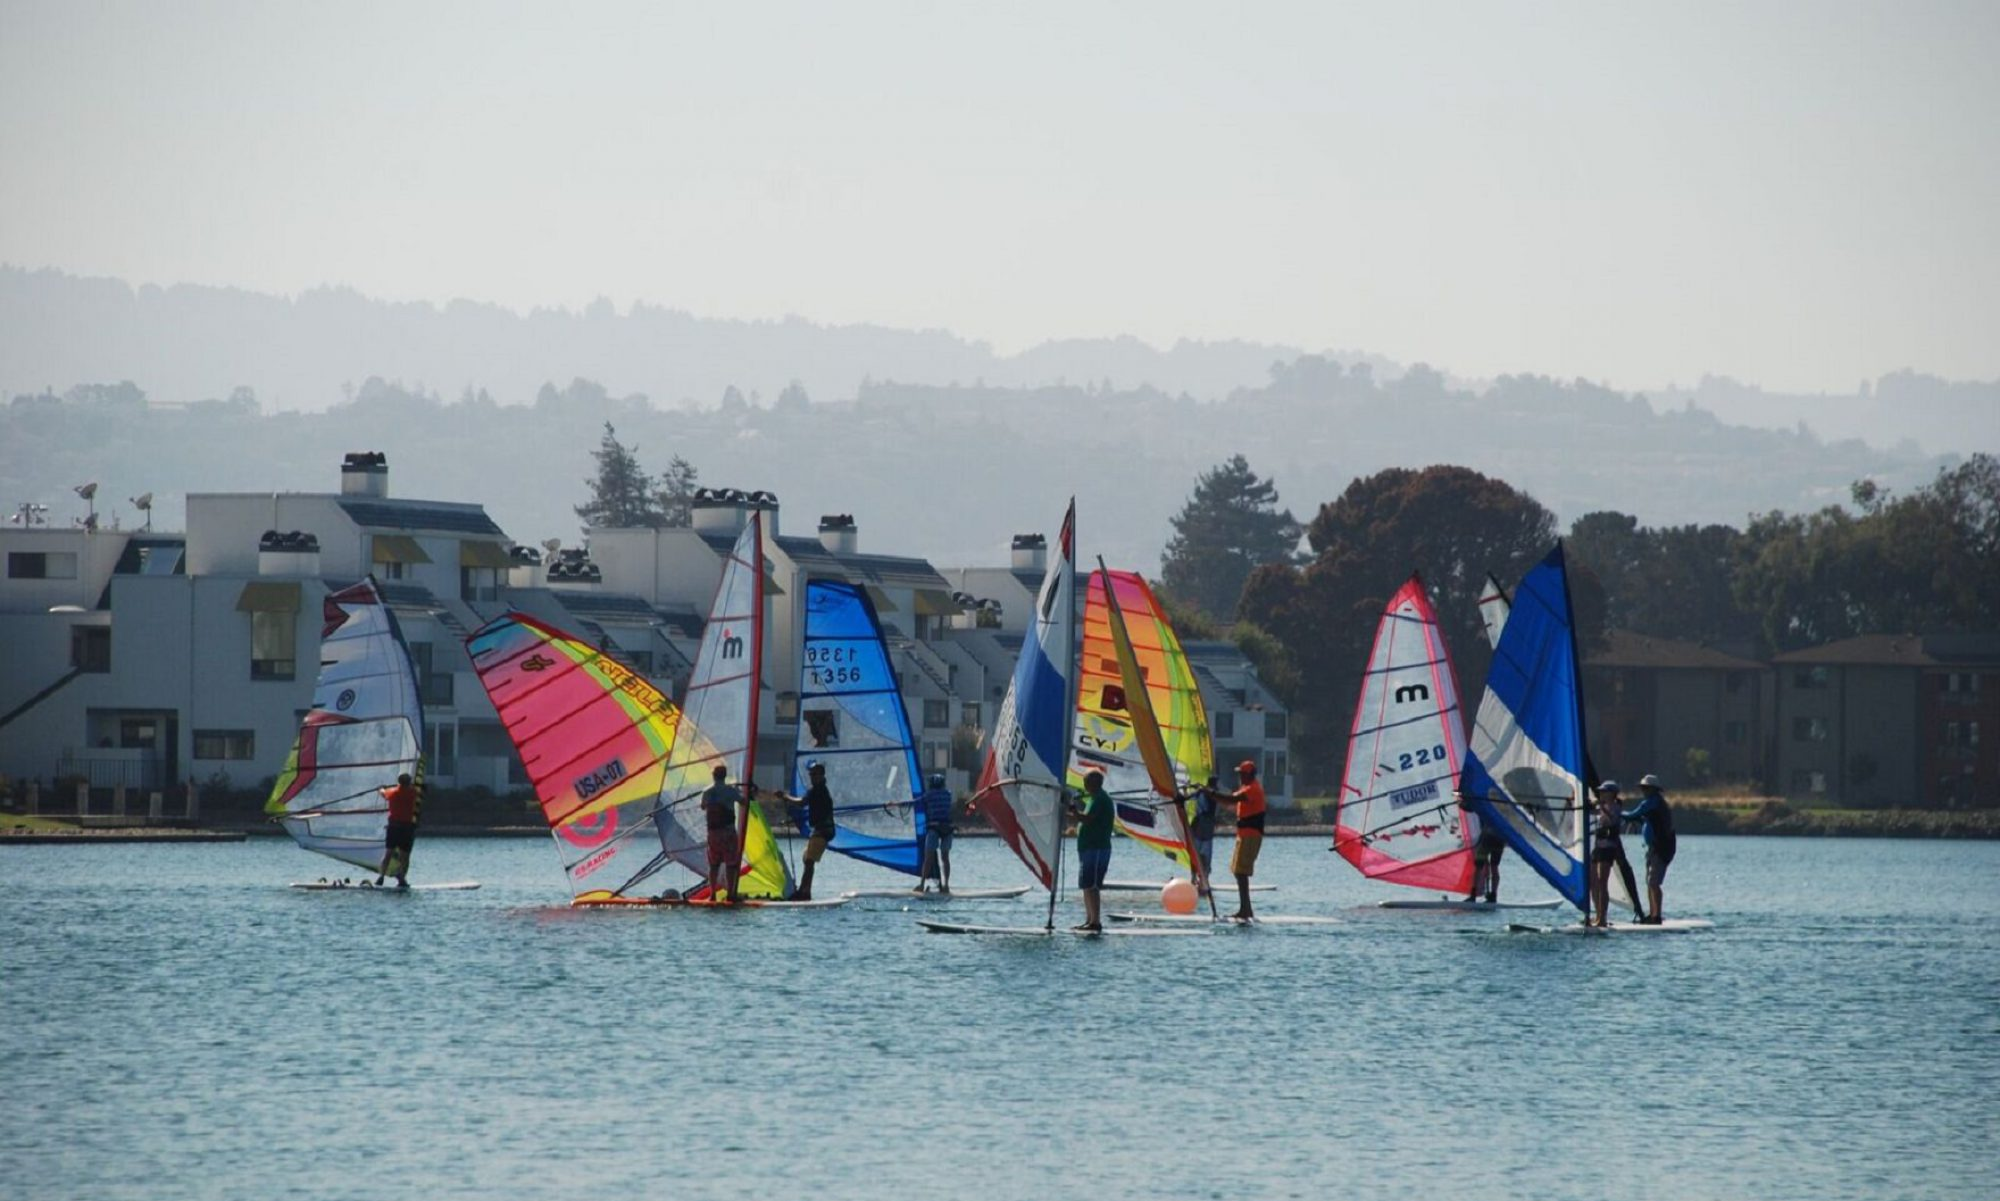 Windsurfer Fleet18